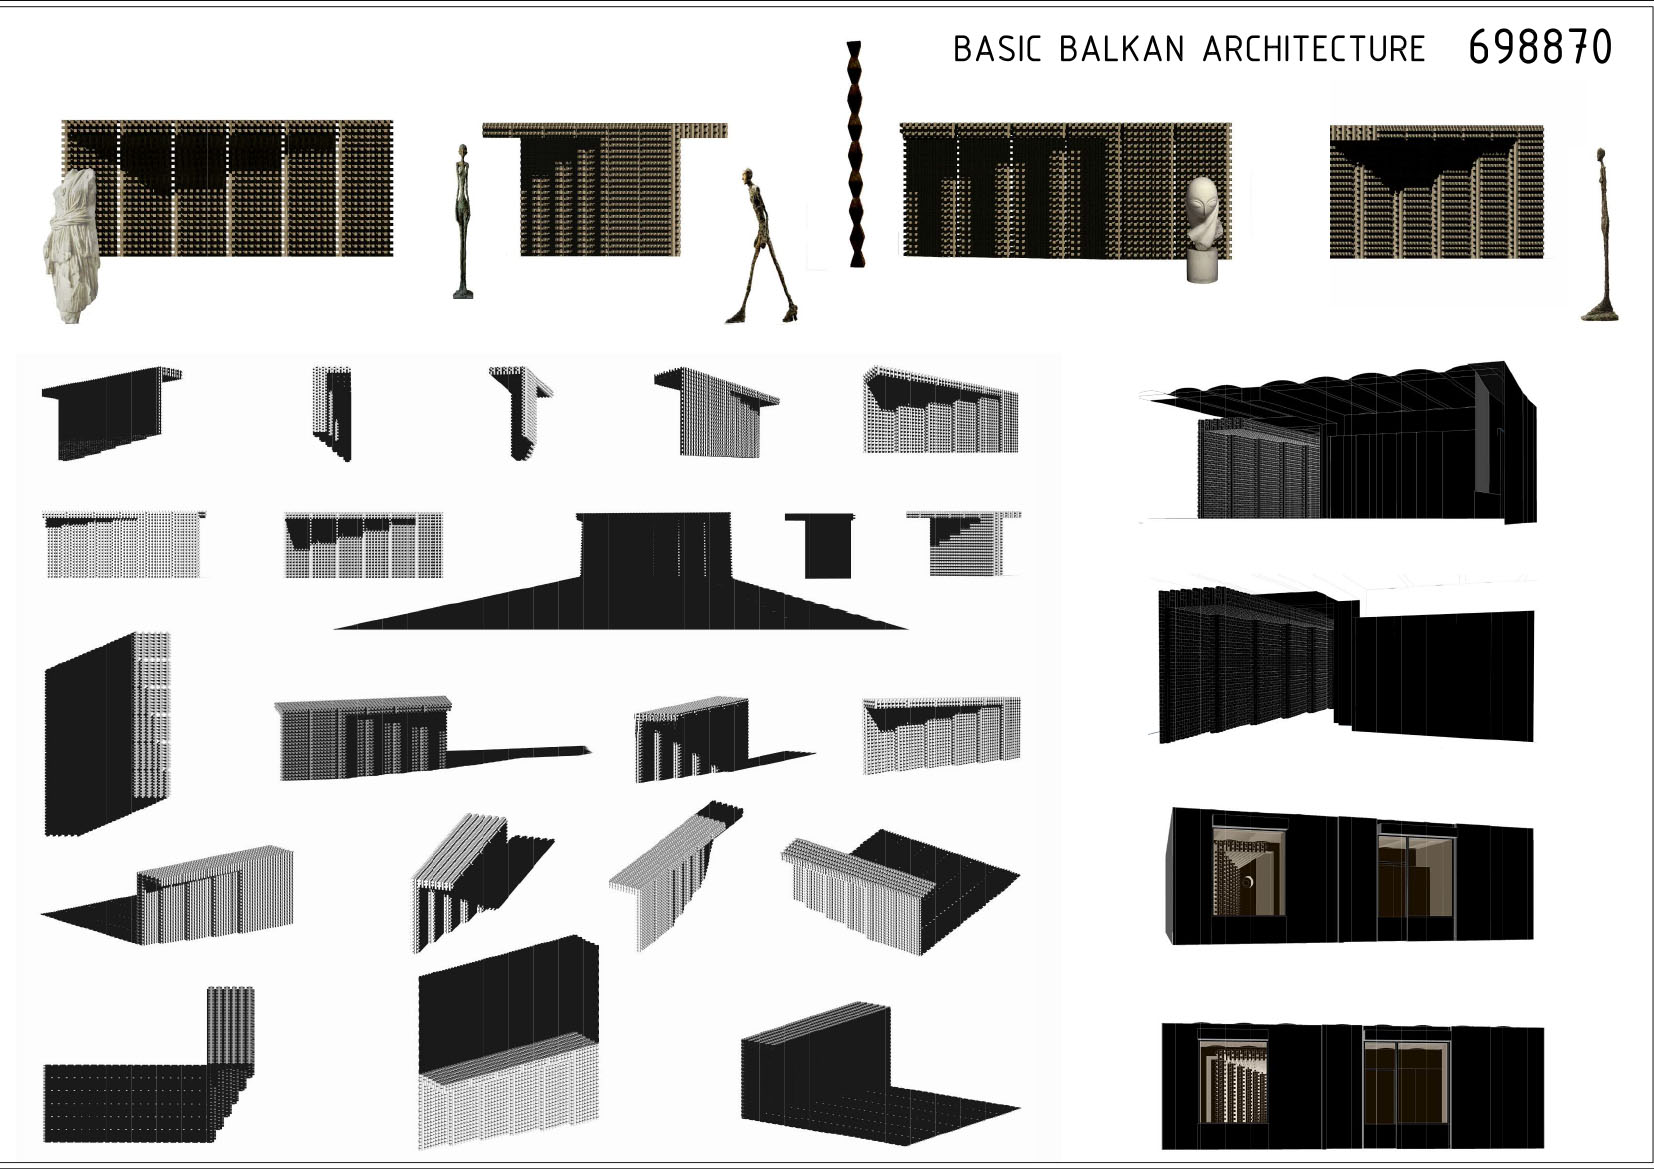 2_BASIC_BALKAN_ARCH_board1